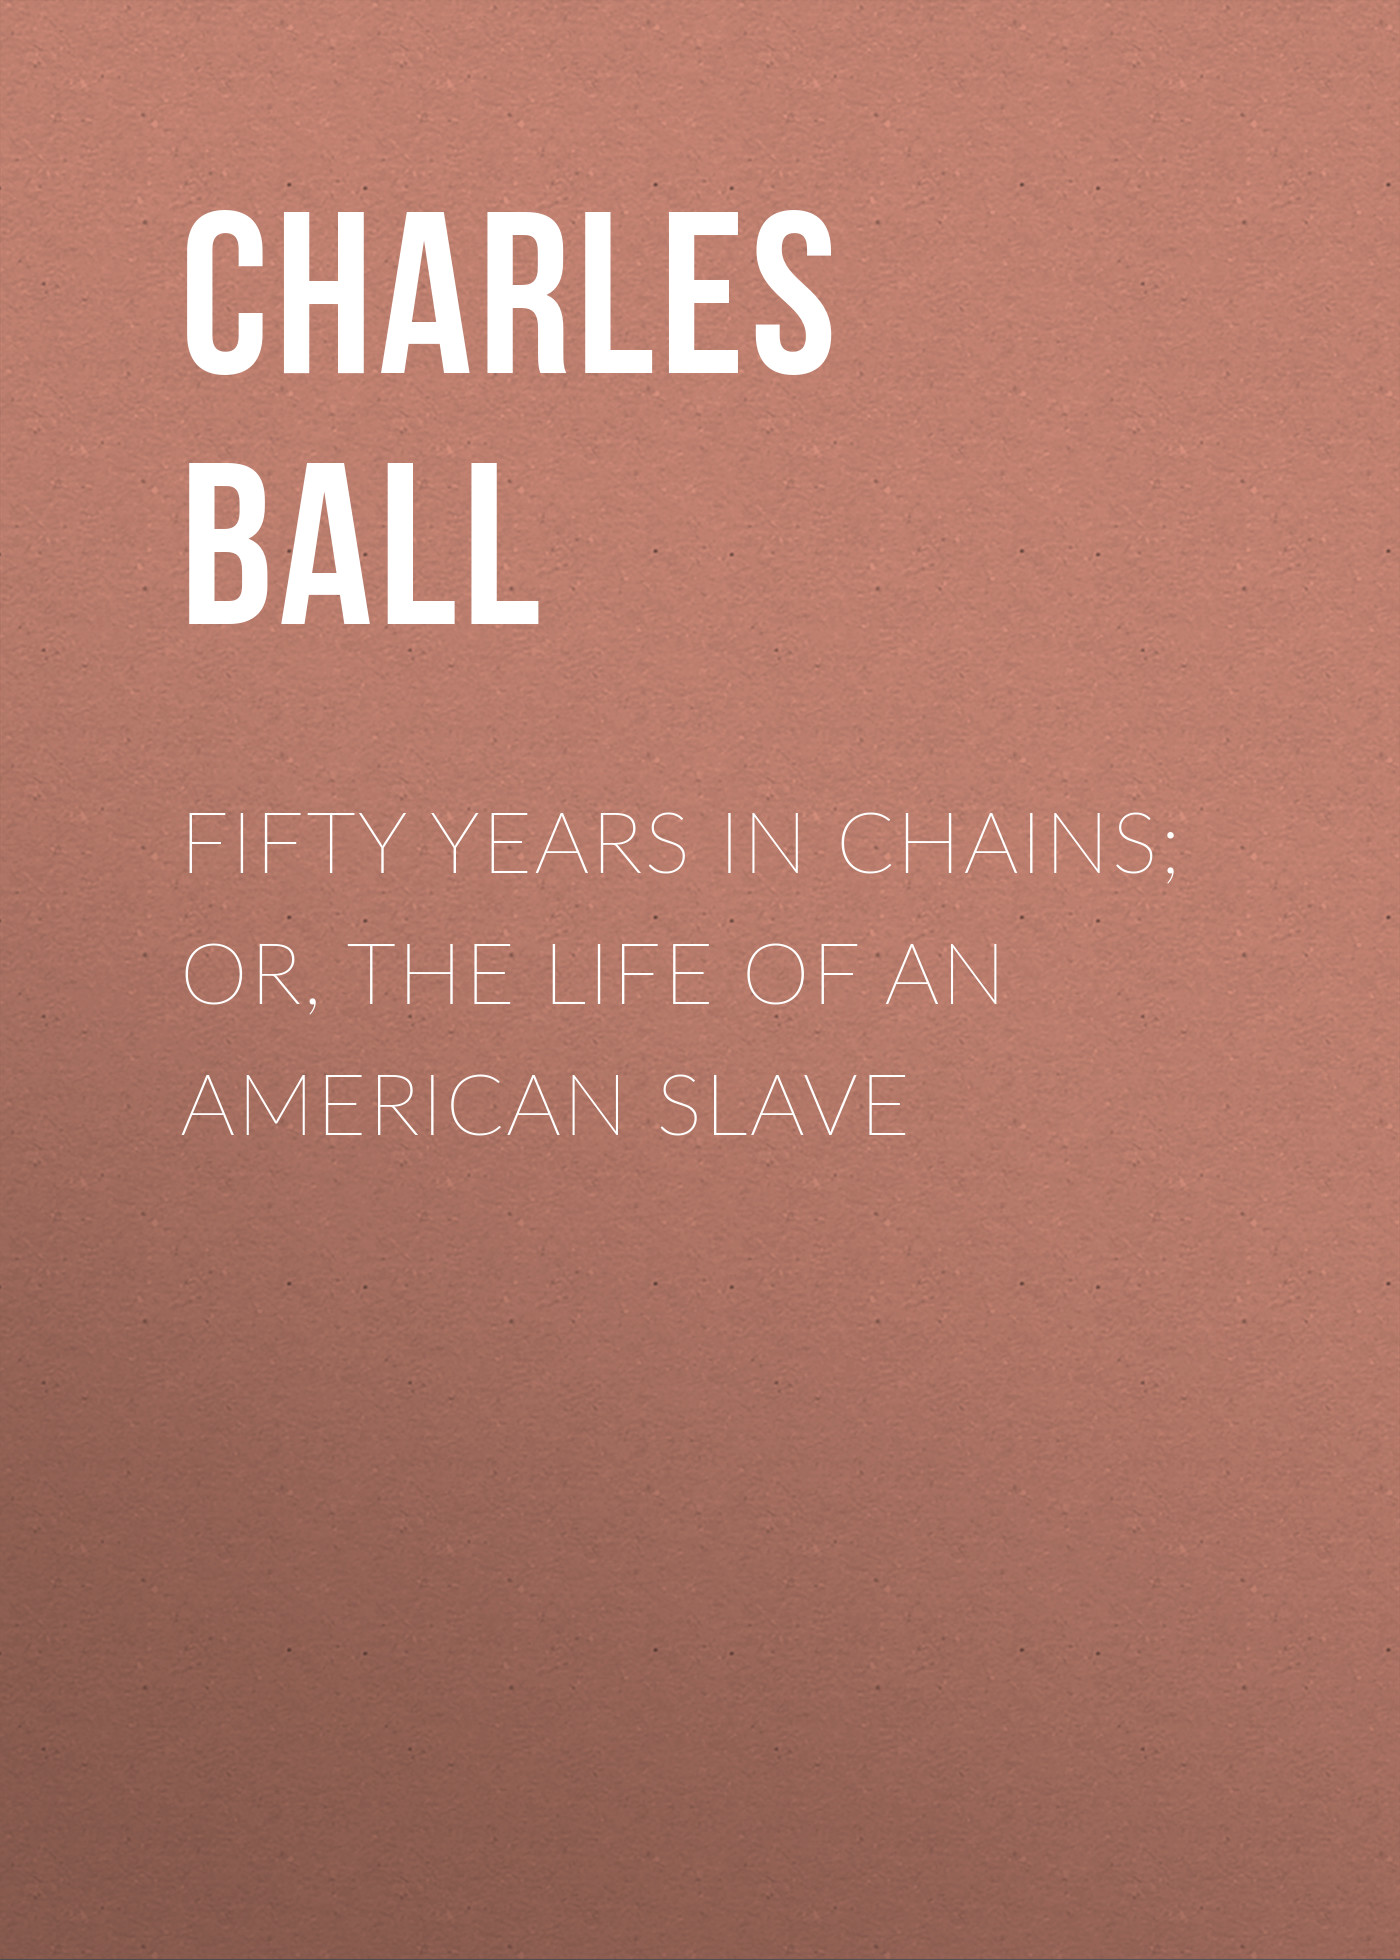 Charles Ball Fifty Years in Chains; or, the Life of an American Slave rebecca harding davis life in the iron mills or the korl woman